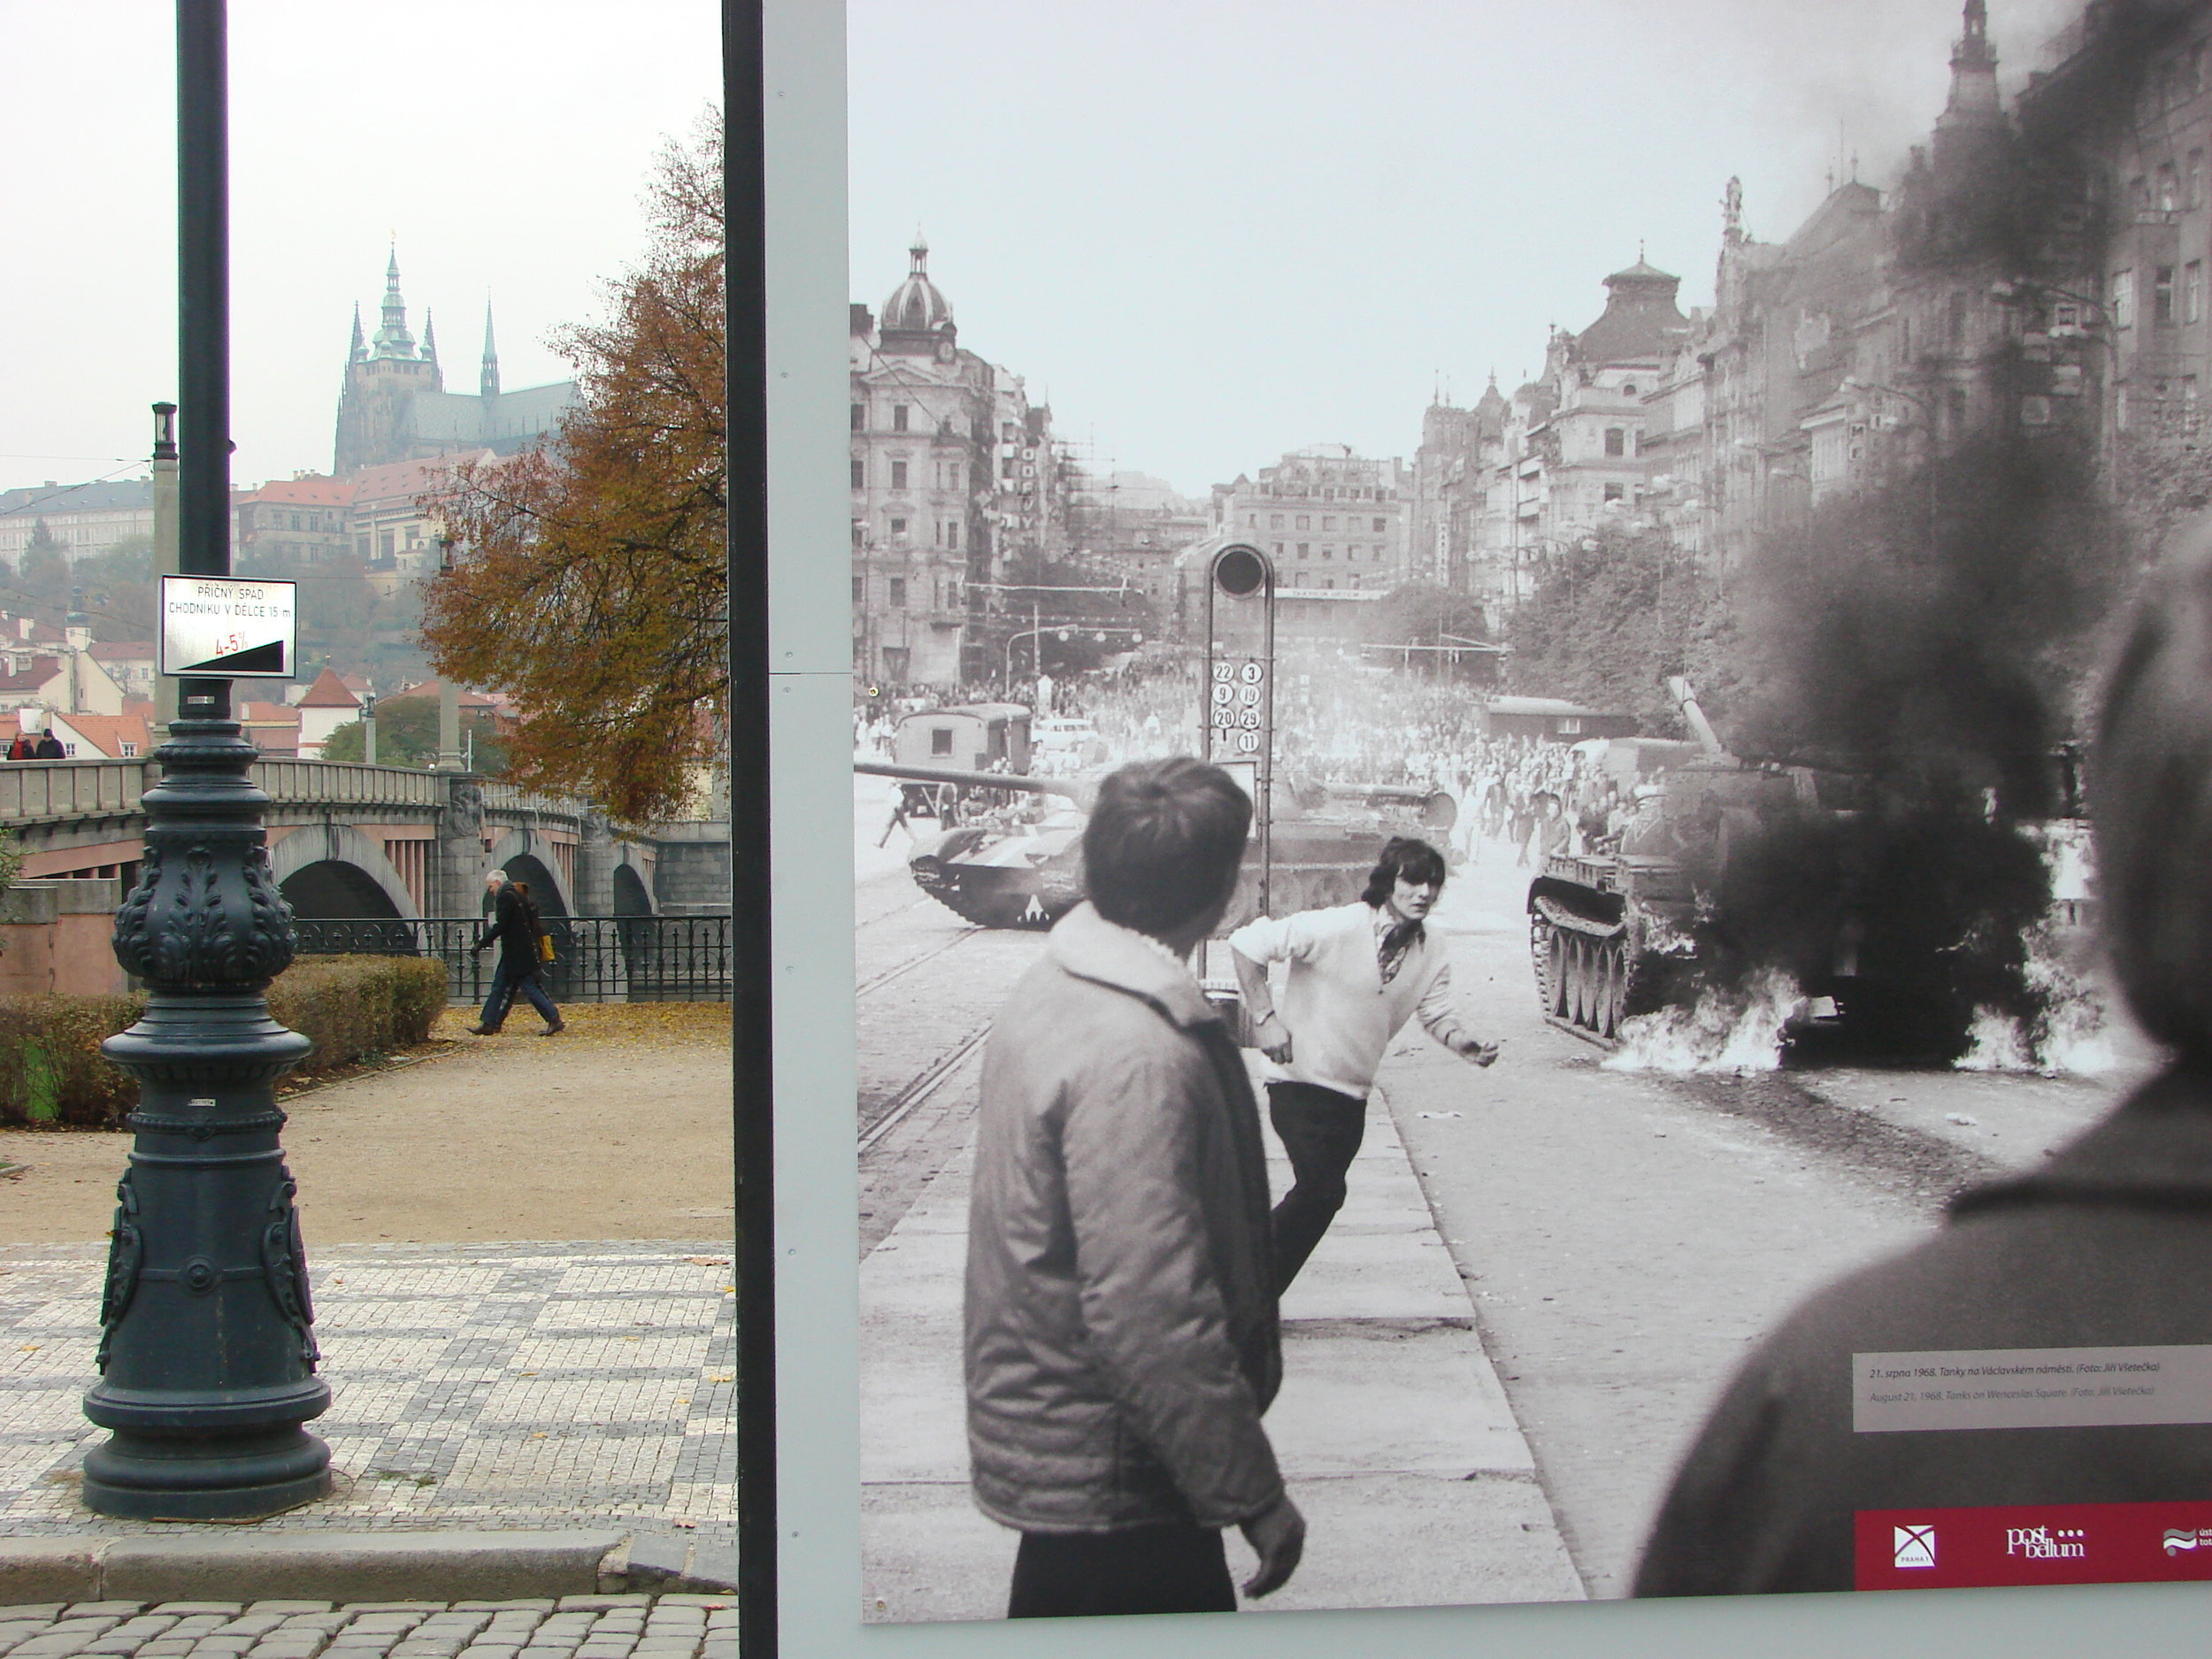 Contrast between modern-day Prague and Prague in 1968.